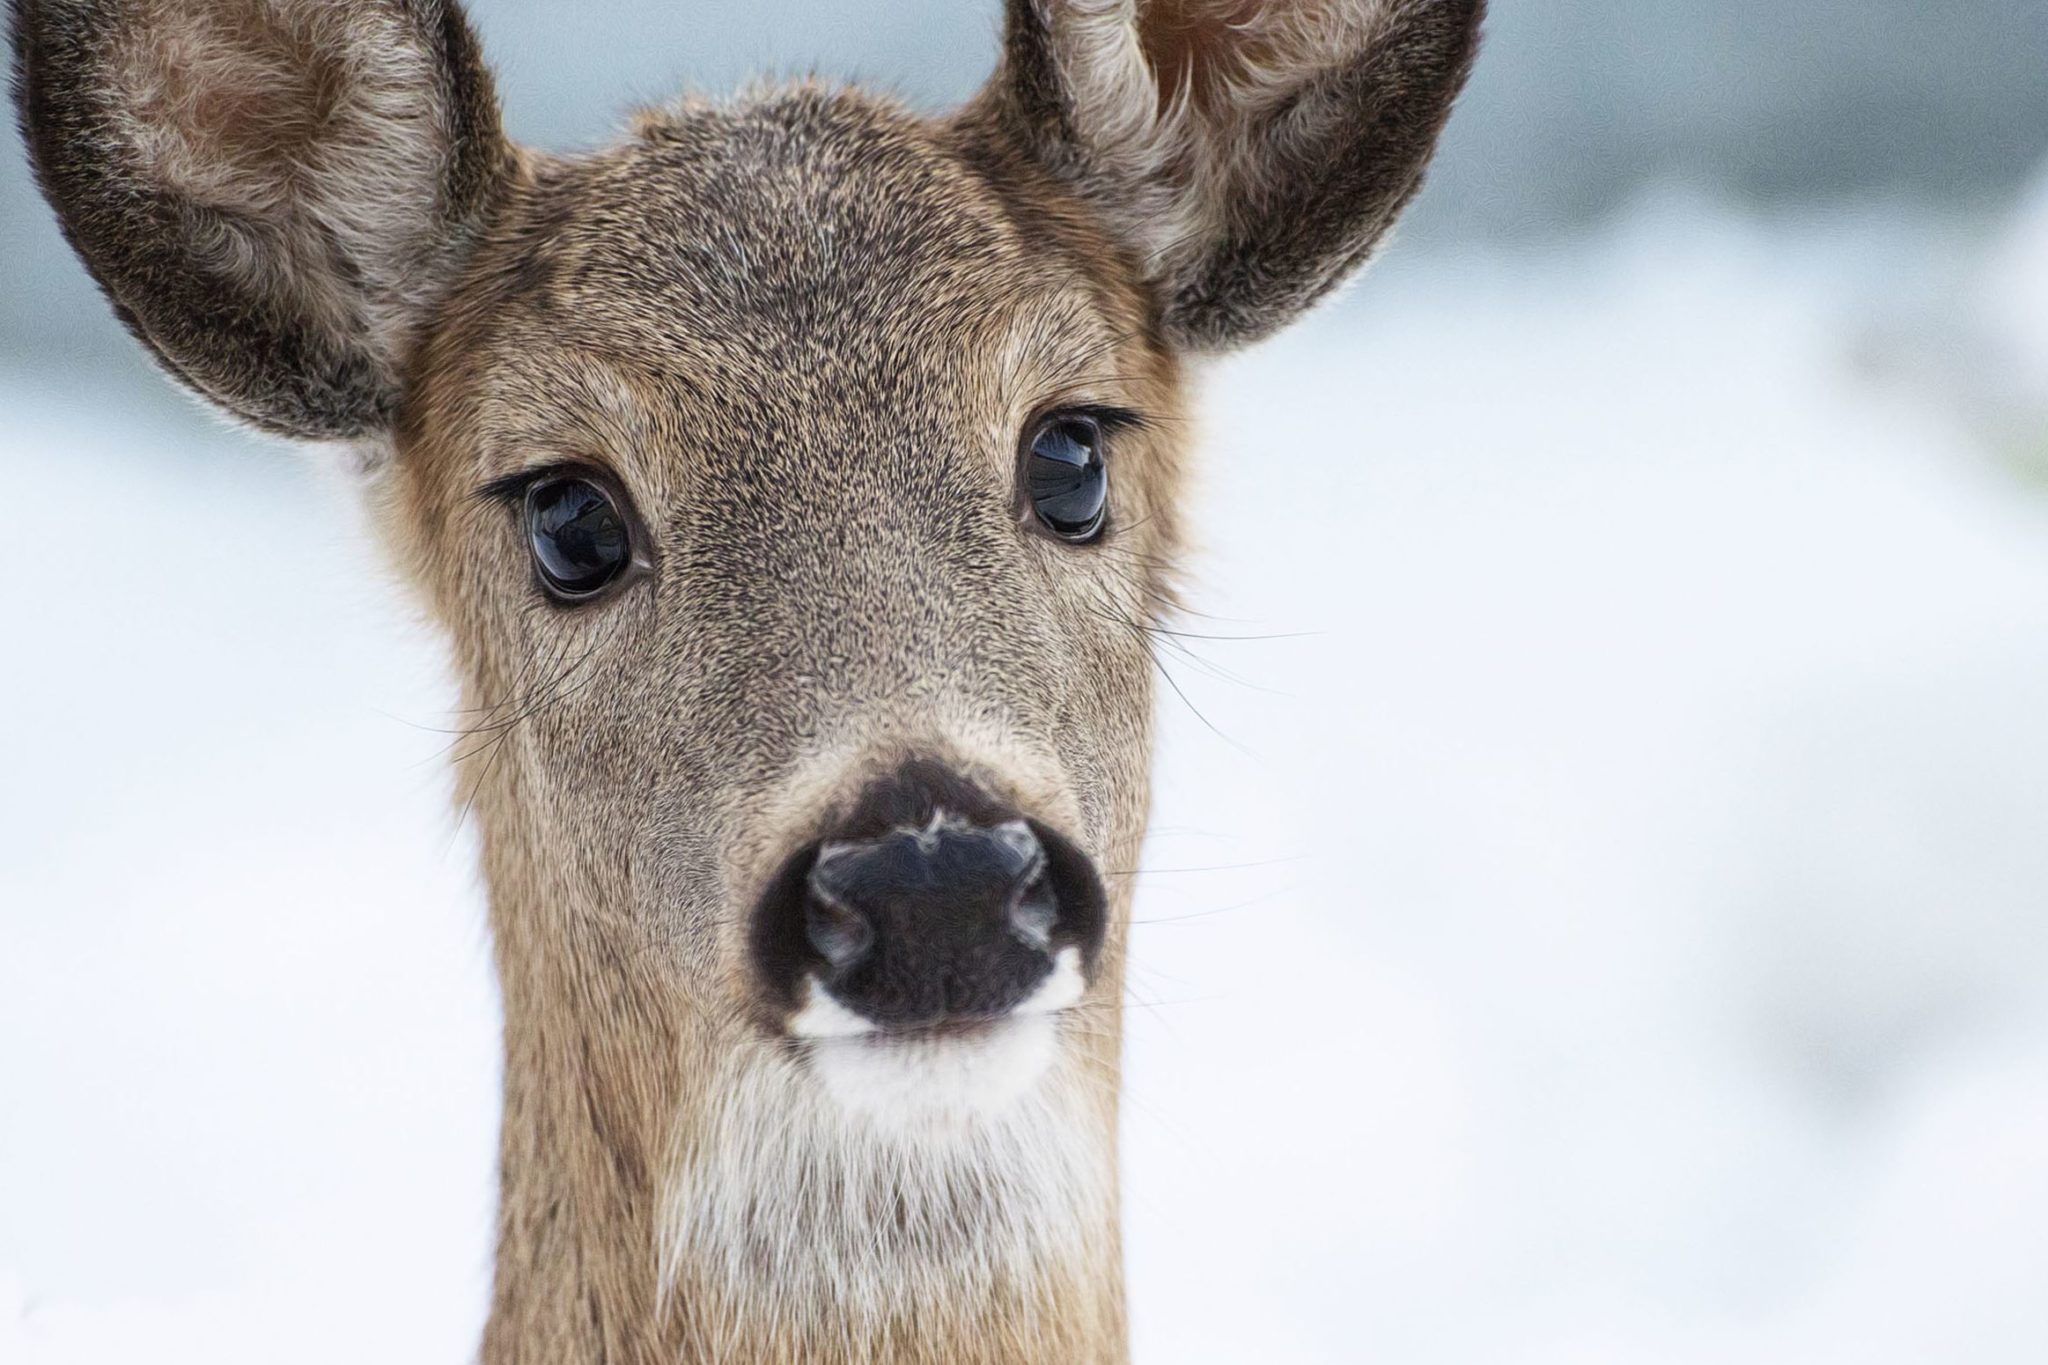 Image of a deer in the winter, zoomed in on its face